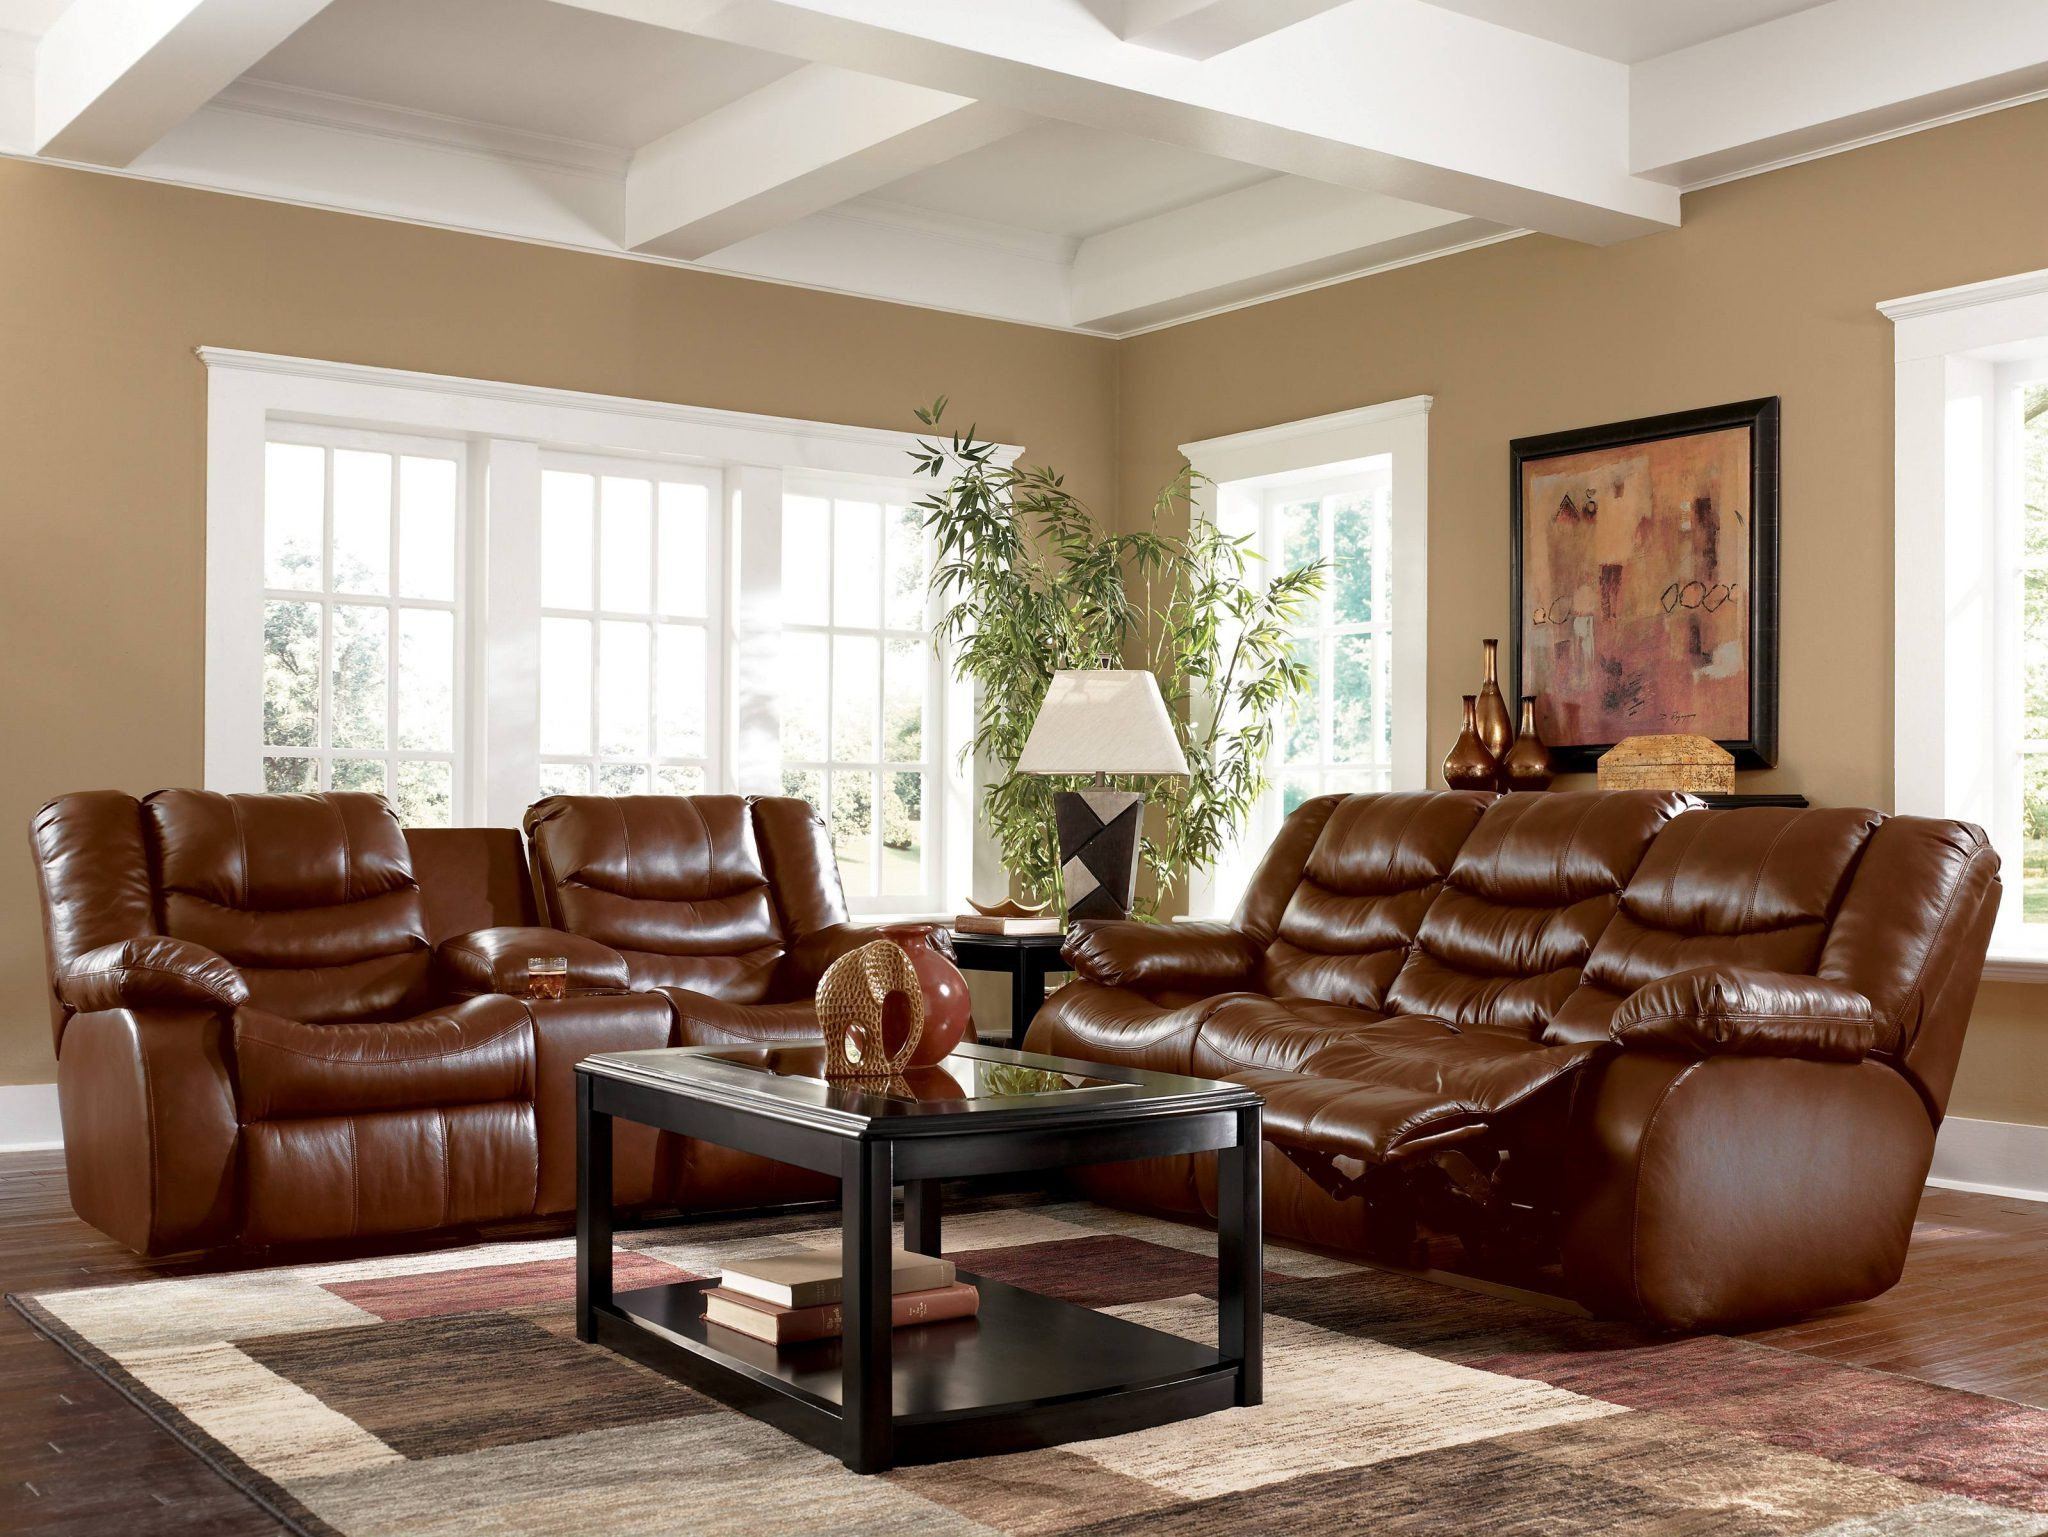 Brown Living Room Ideas Luxury Living Room Ideas with Brown sofas theydesign theydesign